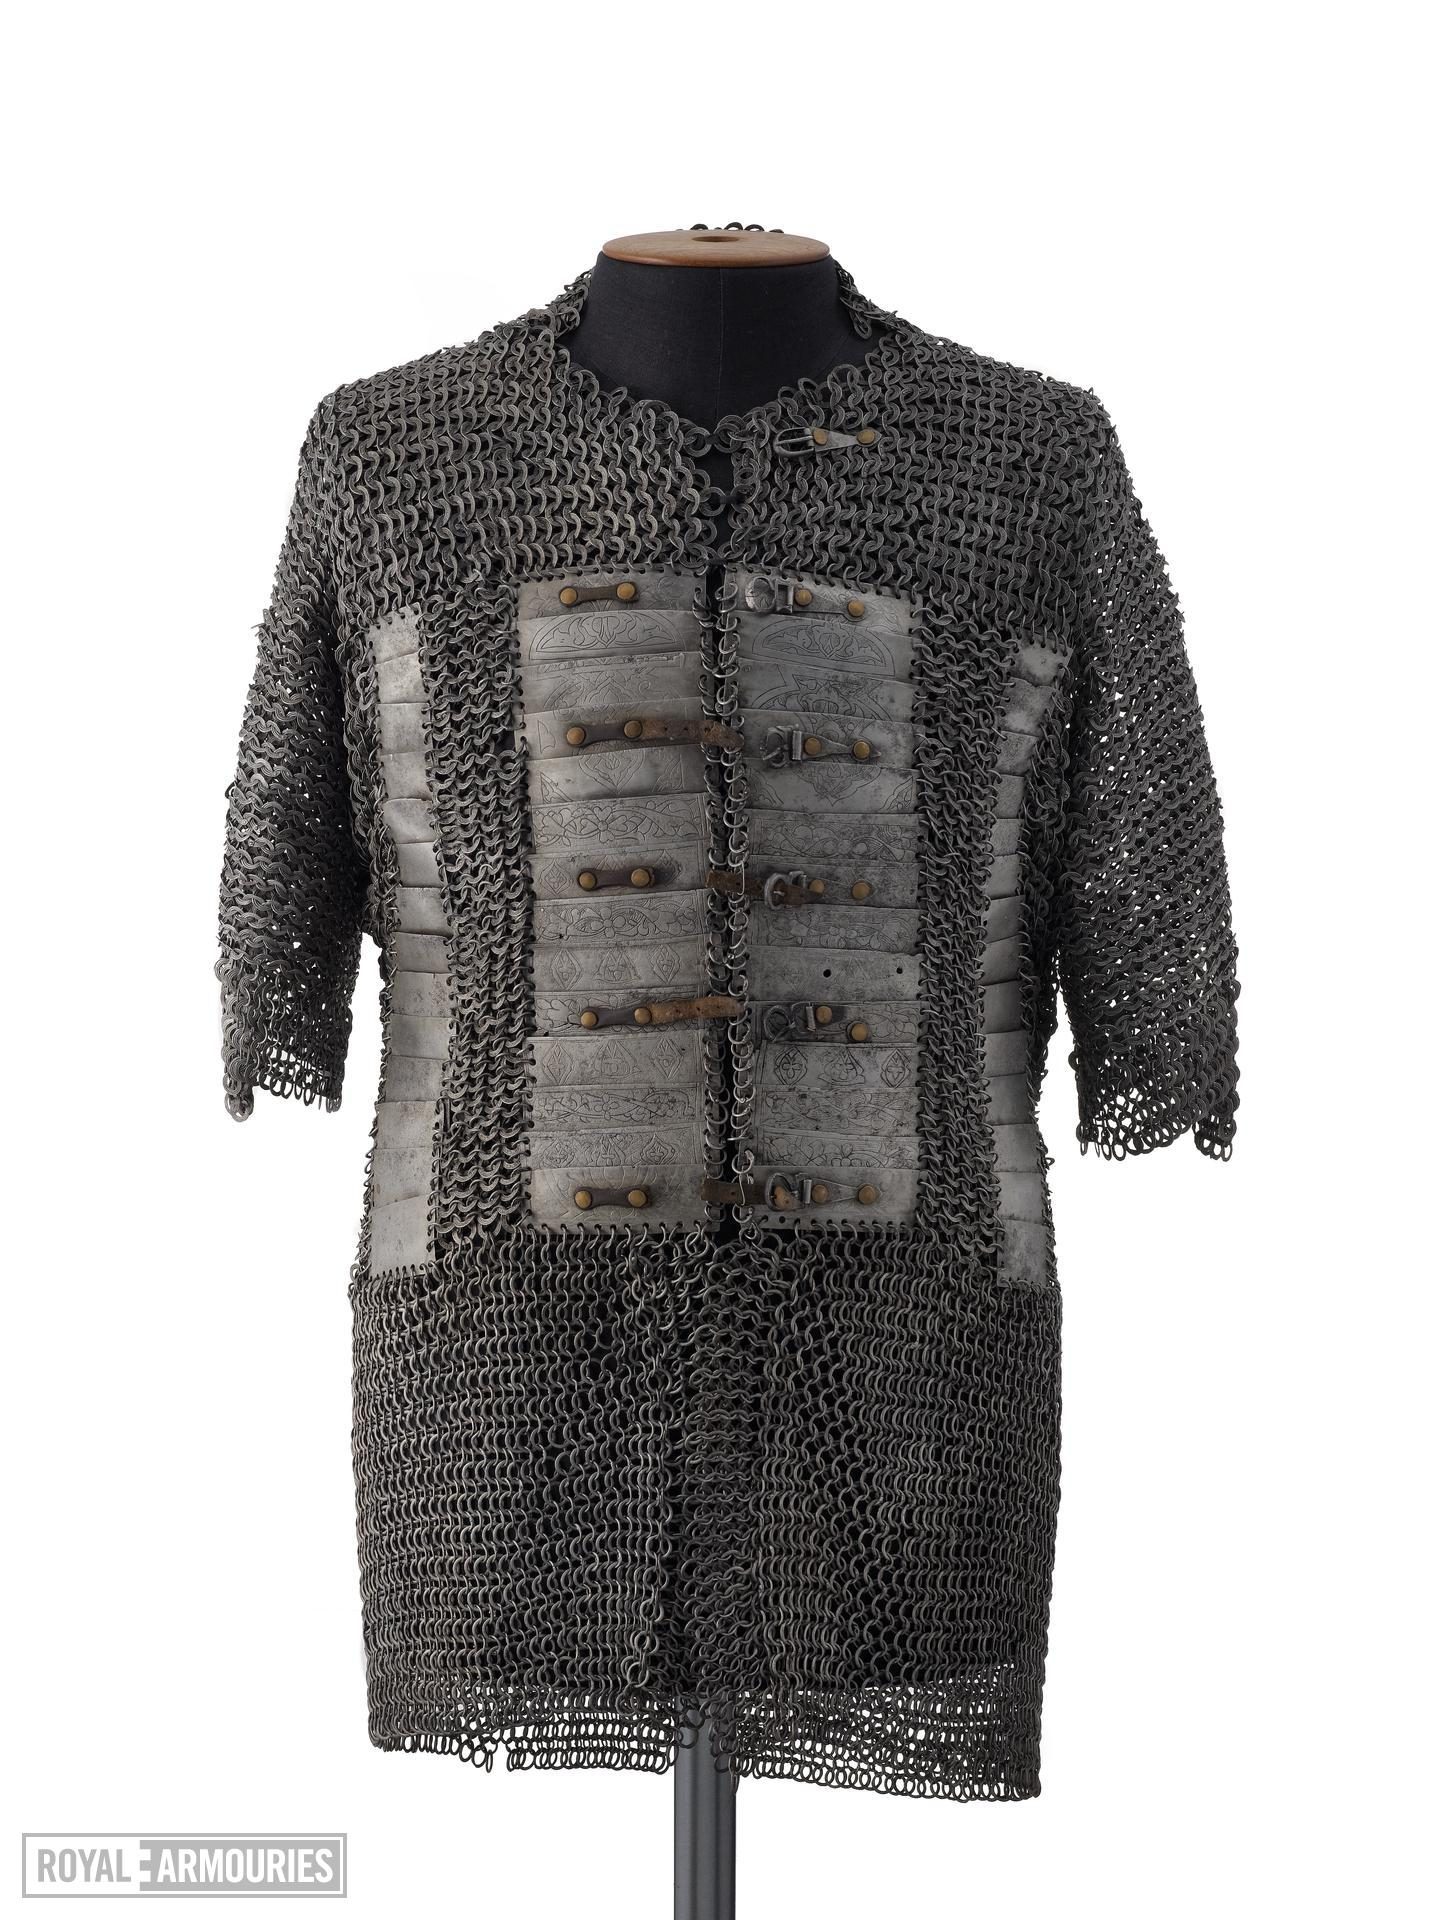 Mail and plate coat (zirh gomlek)